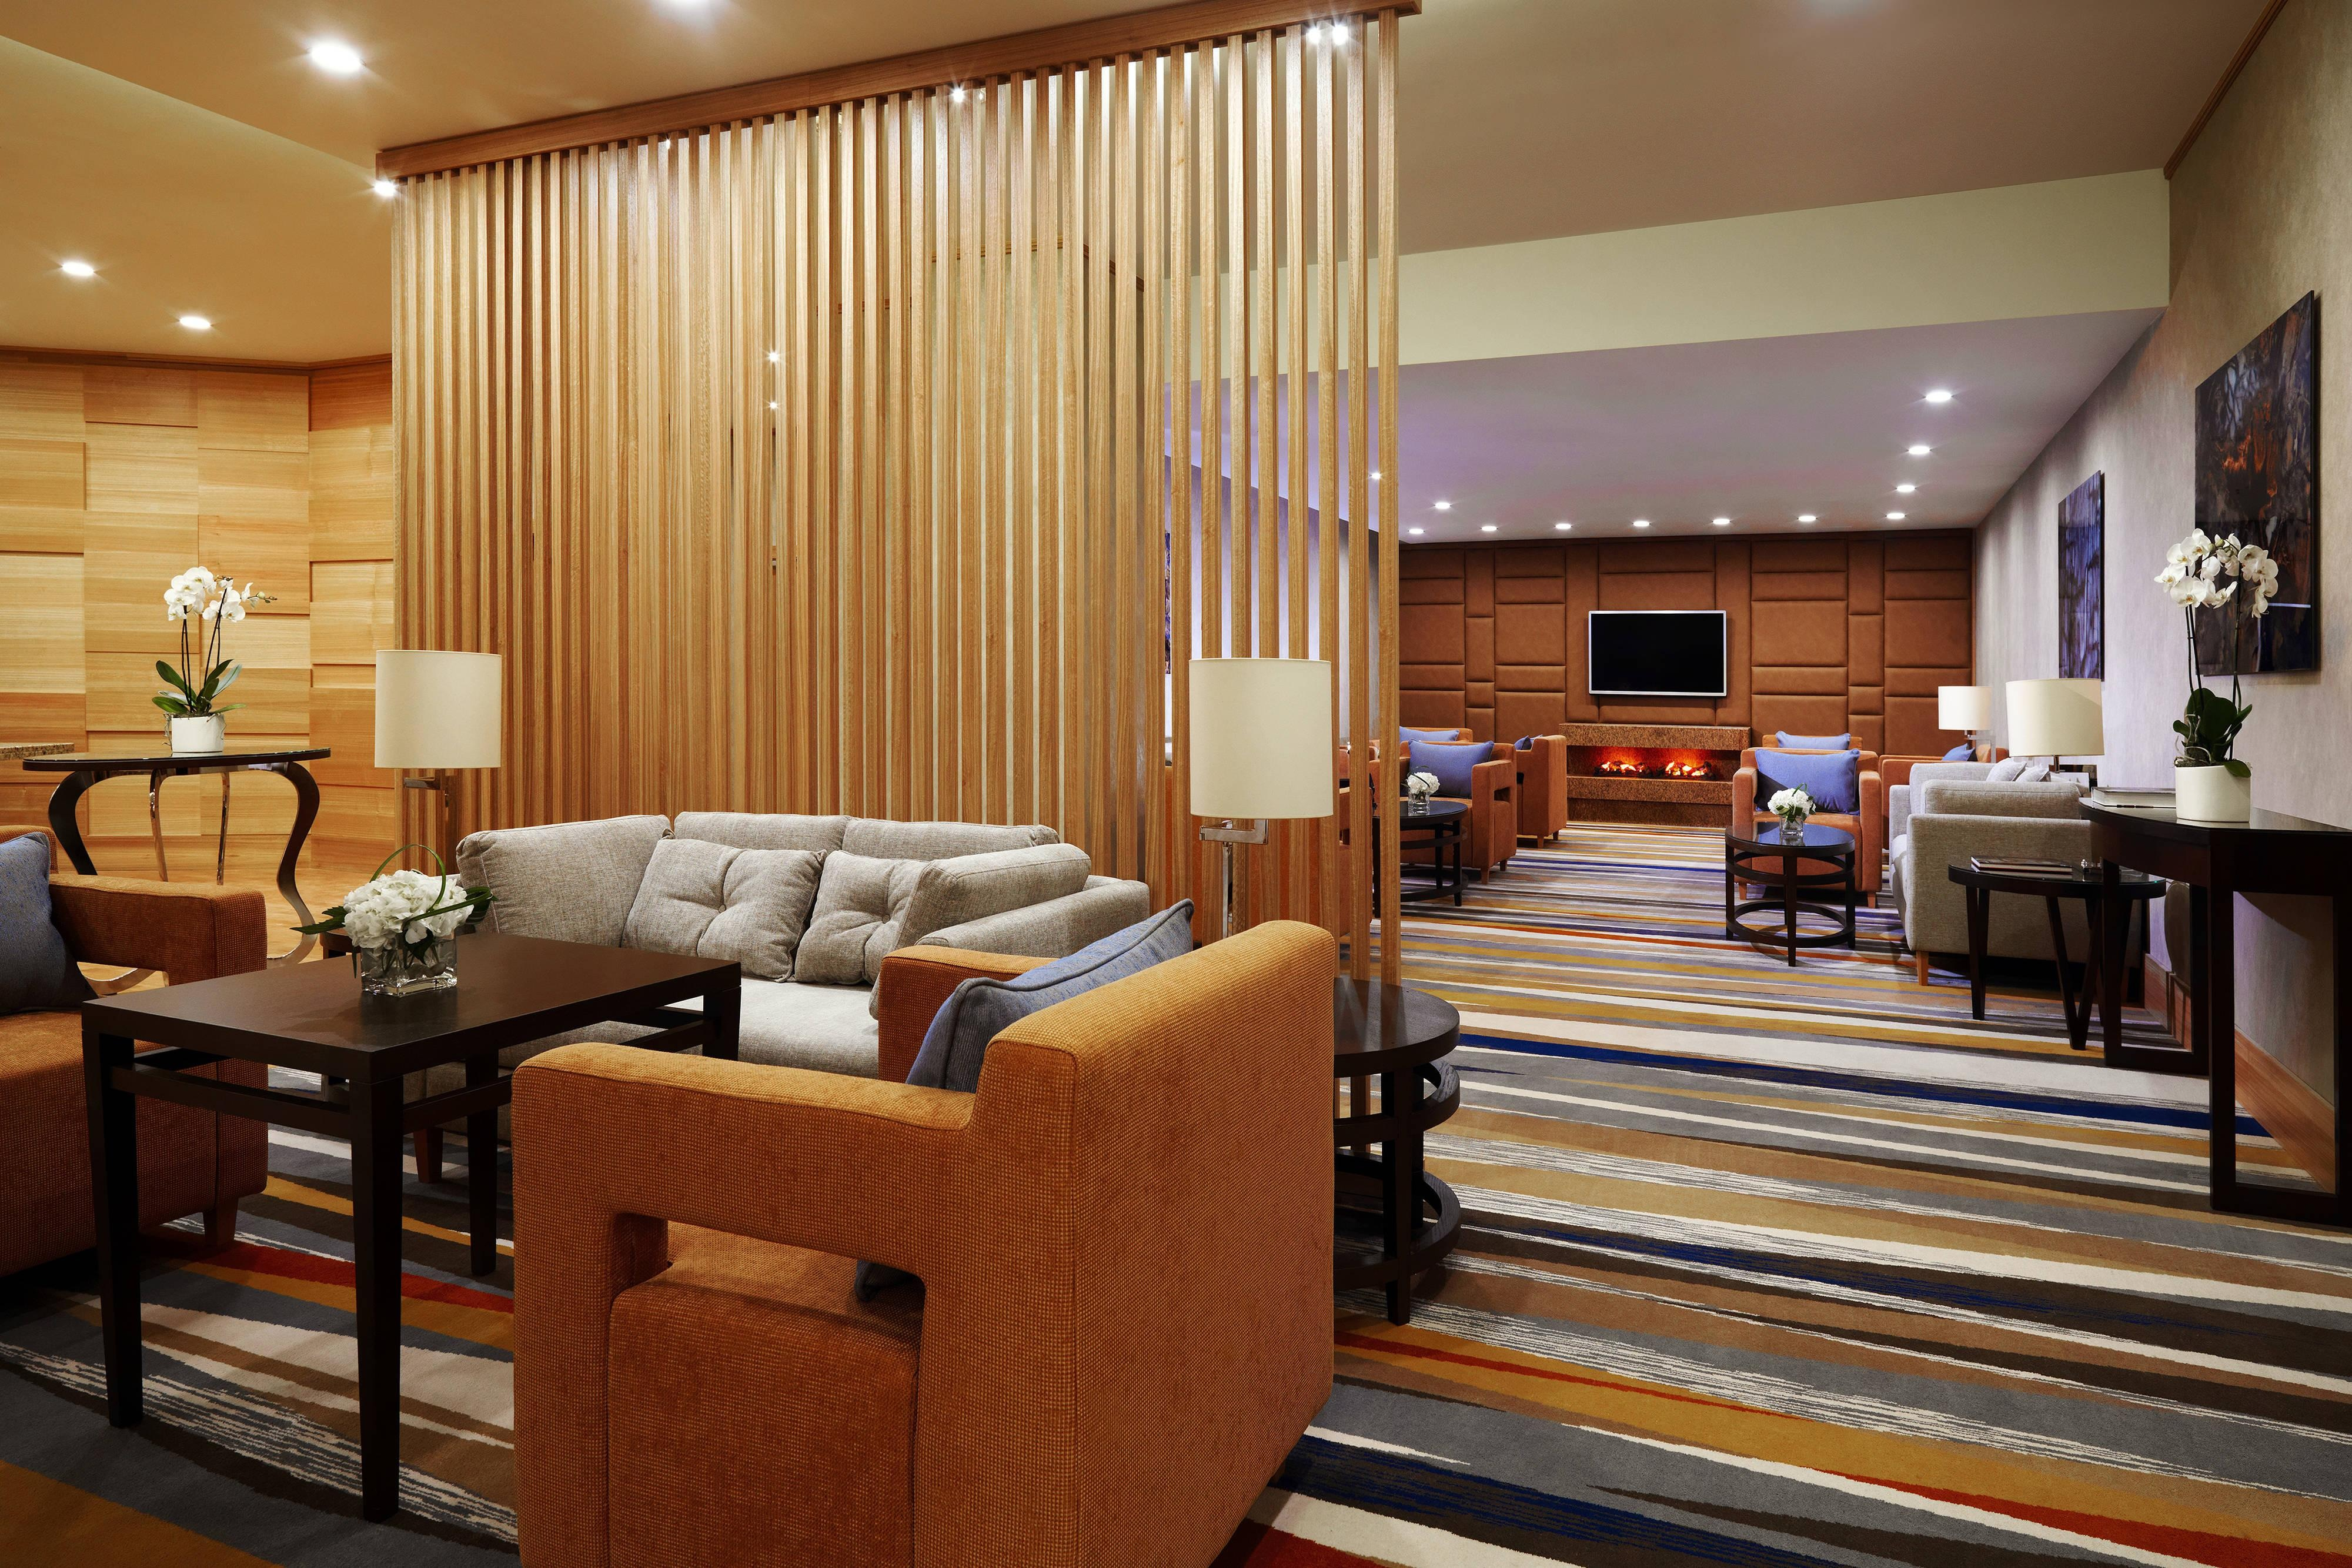 Moscow Marriott Grand Hotel lounge ejecutivo